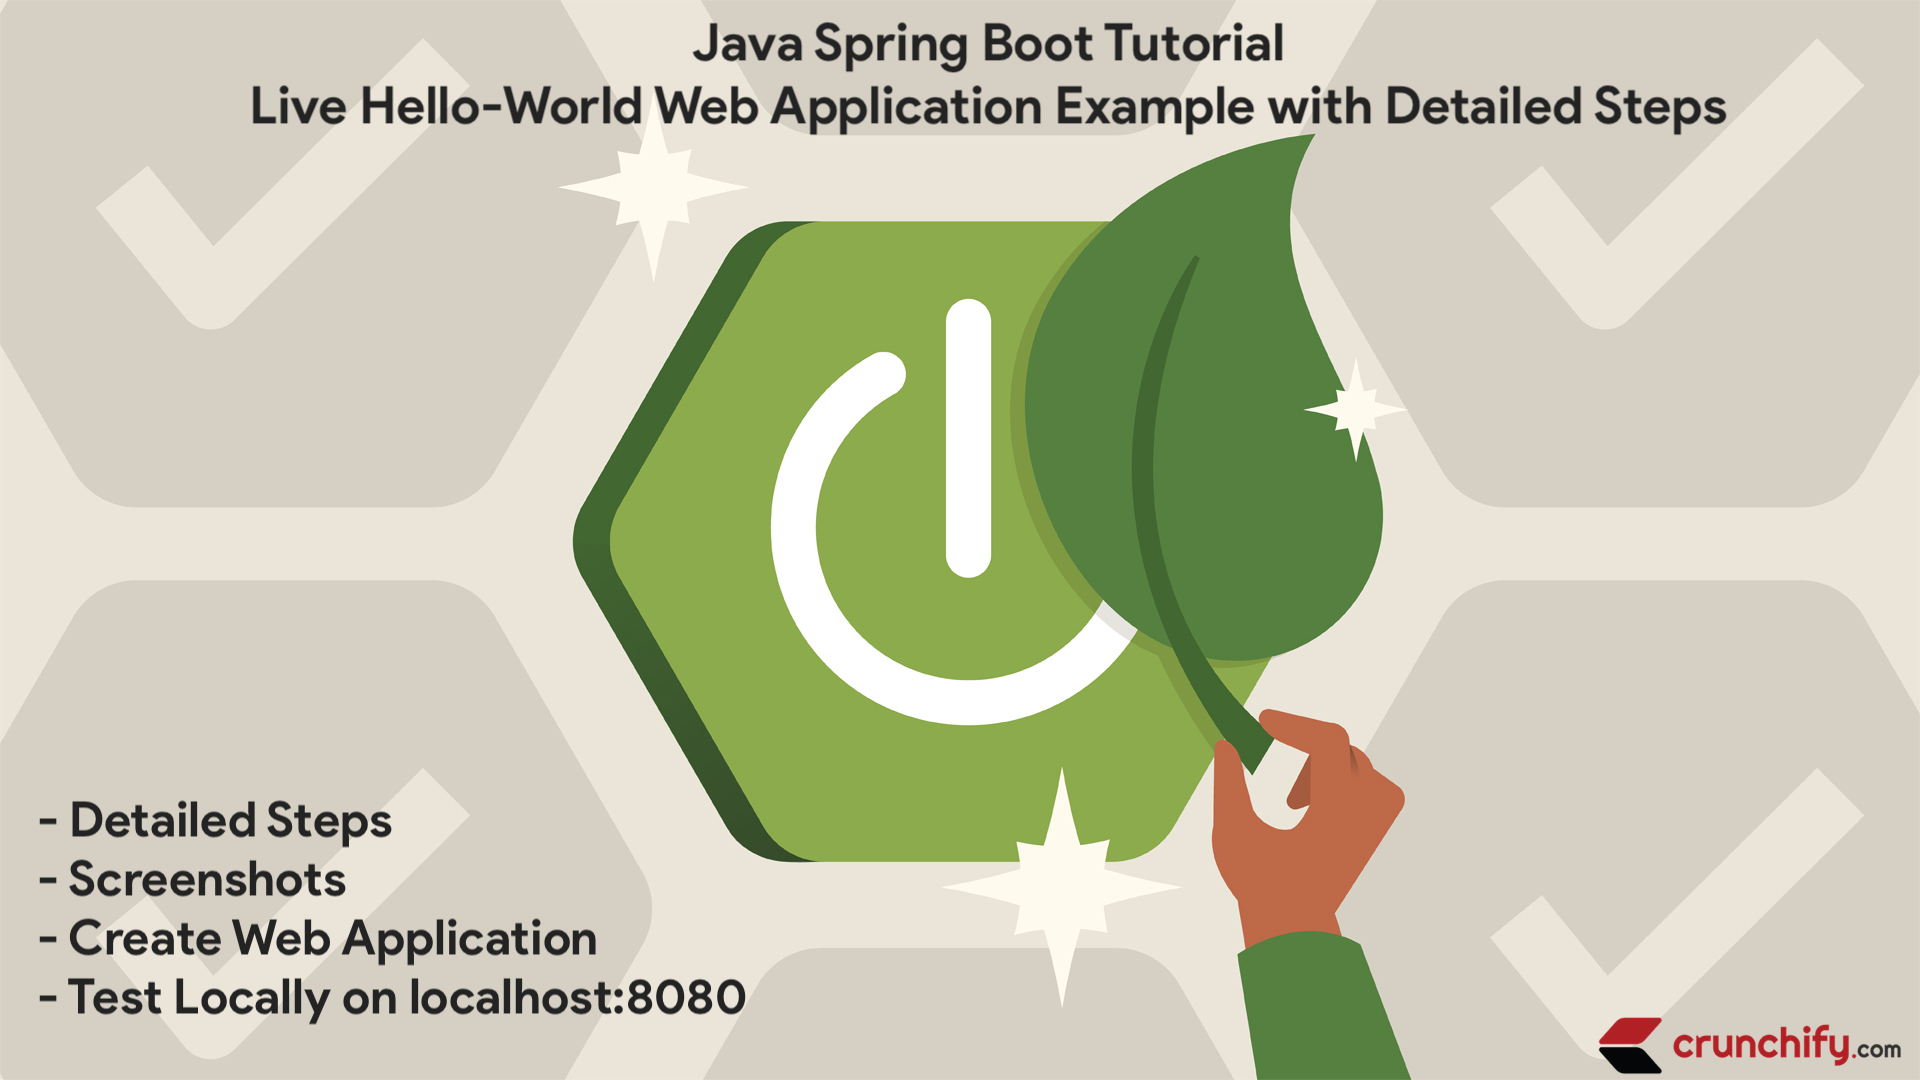 Java Spring Boot Tutorial Live Hello World Web Application Example